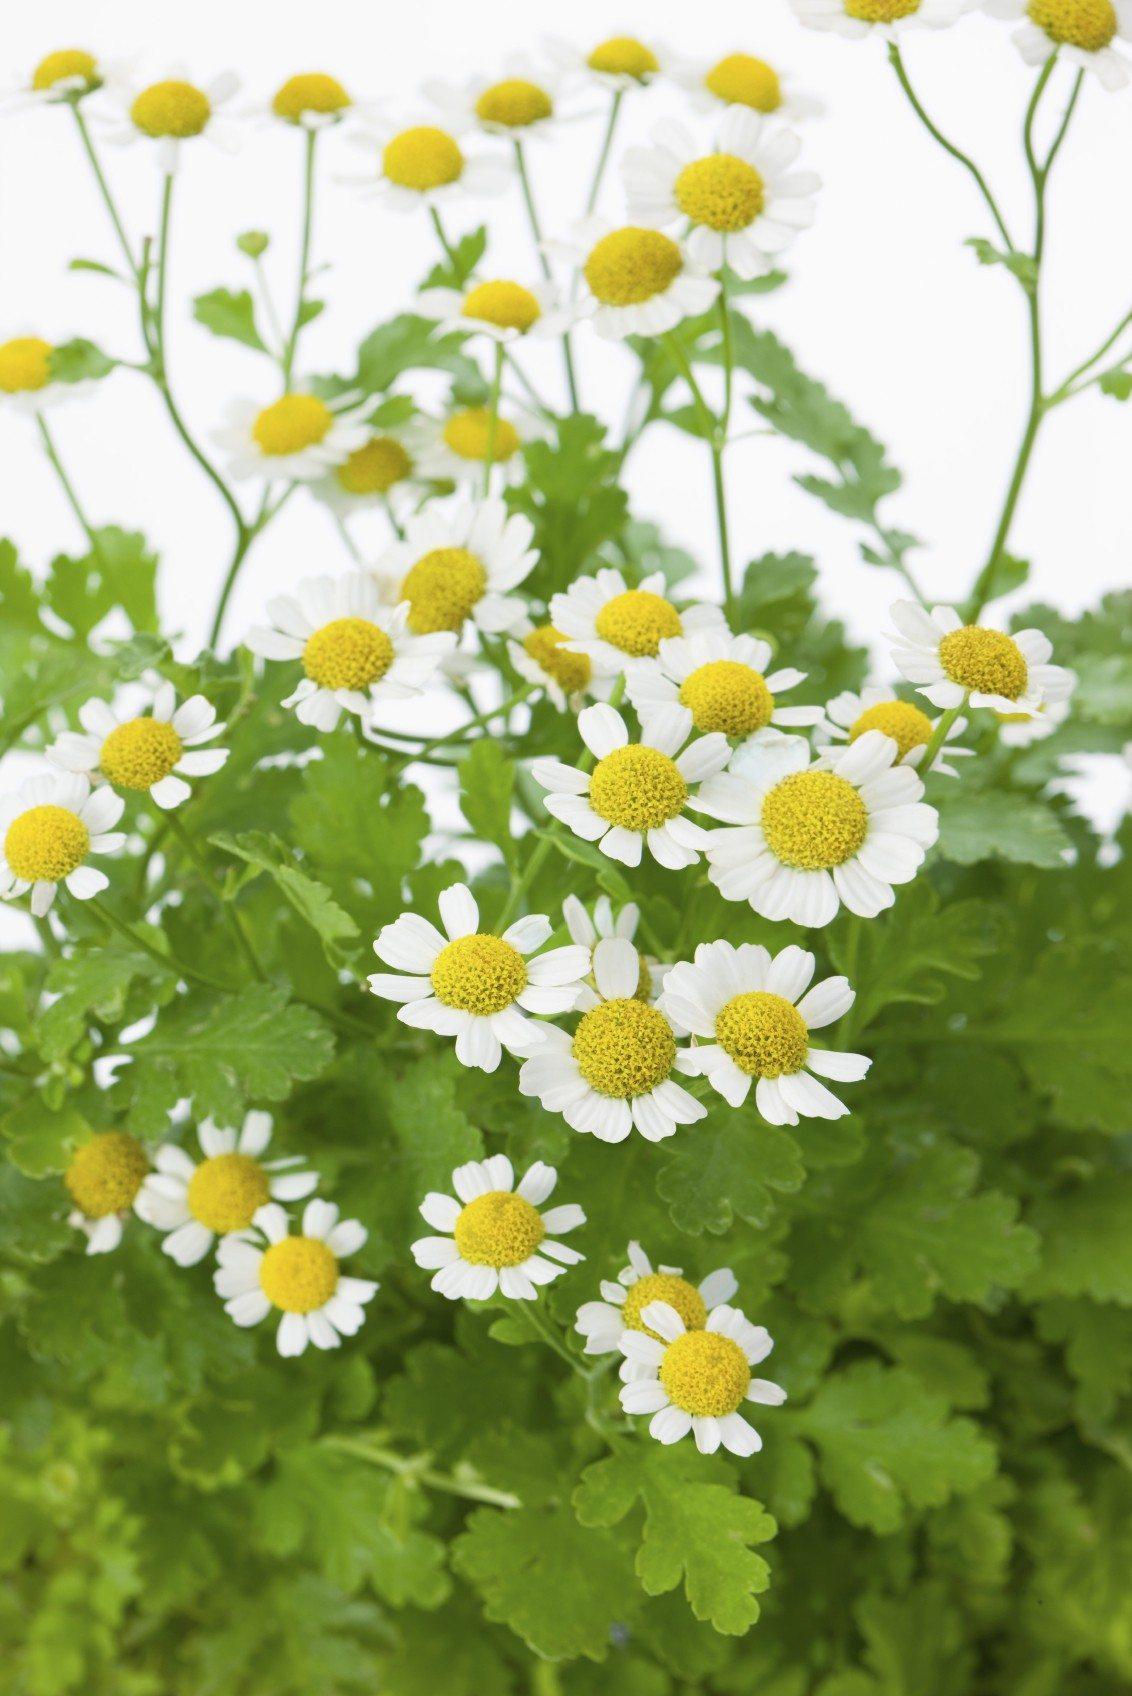 Feverfew Plant Harvesting Learn When To Harvest Feverfew Leaves